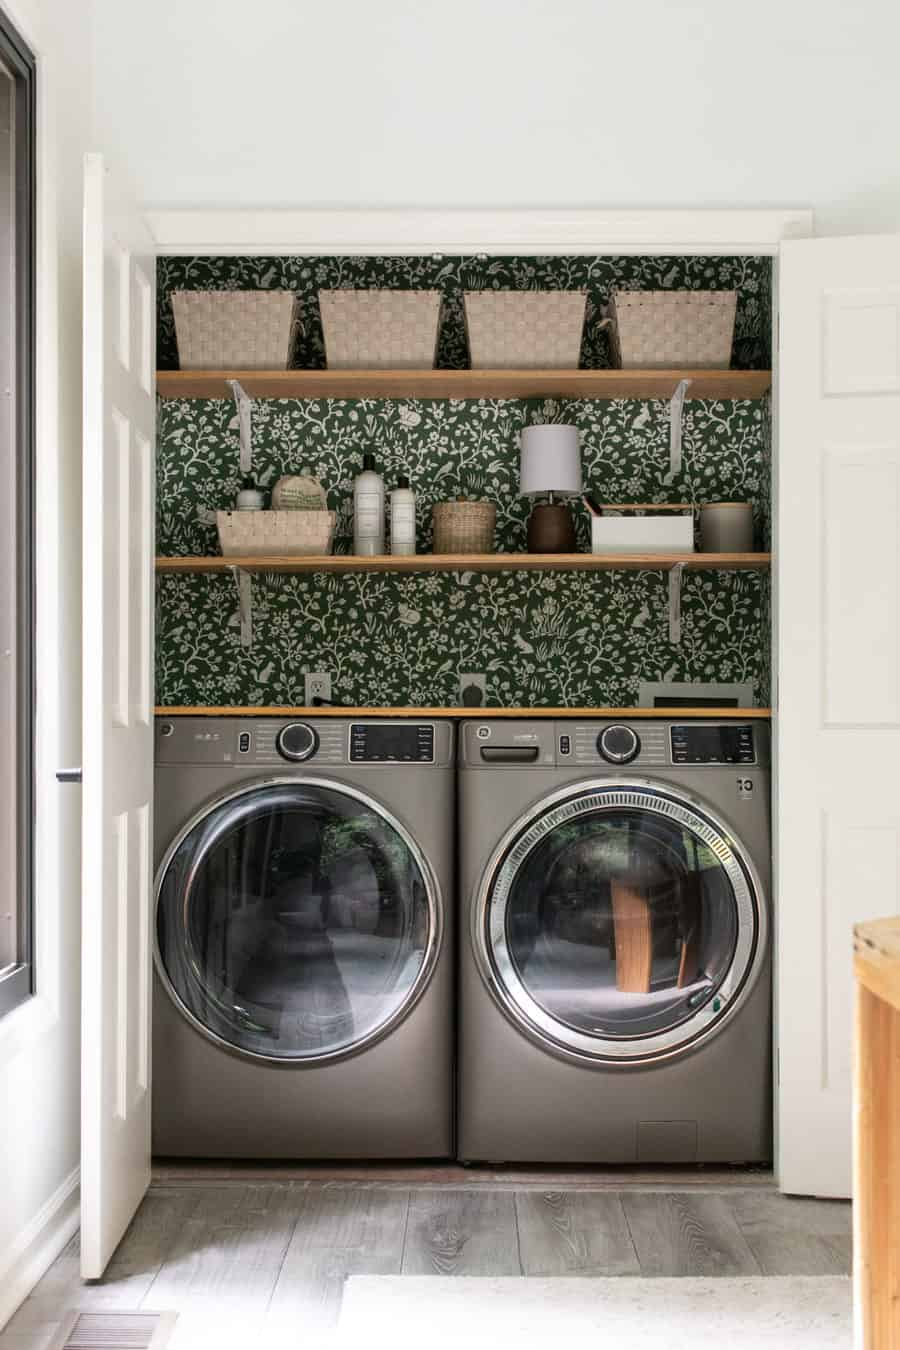 Laundry closet with GE washer and dryer